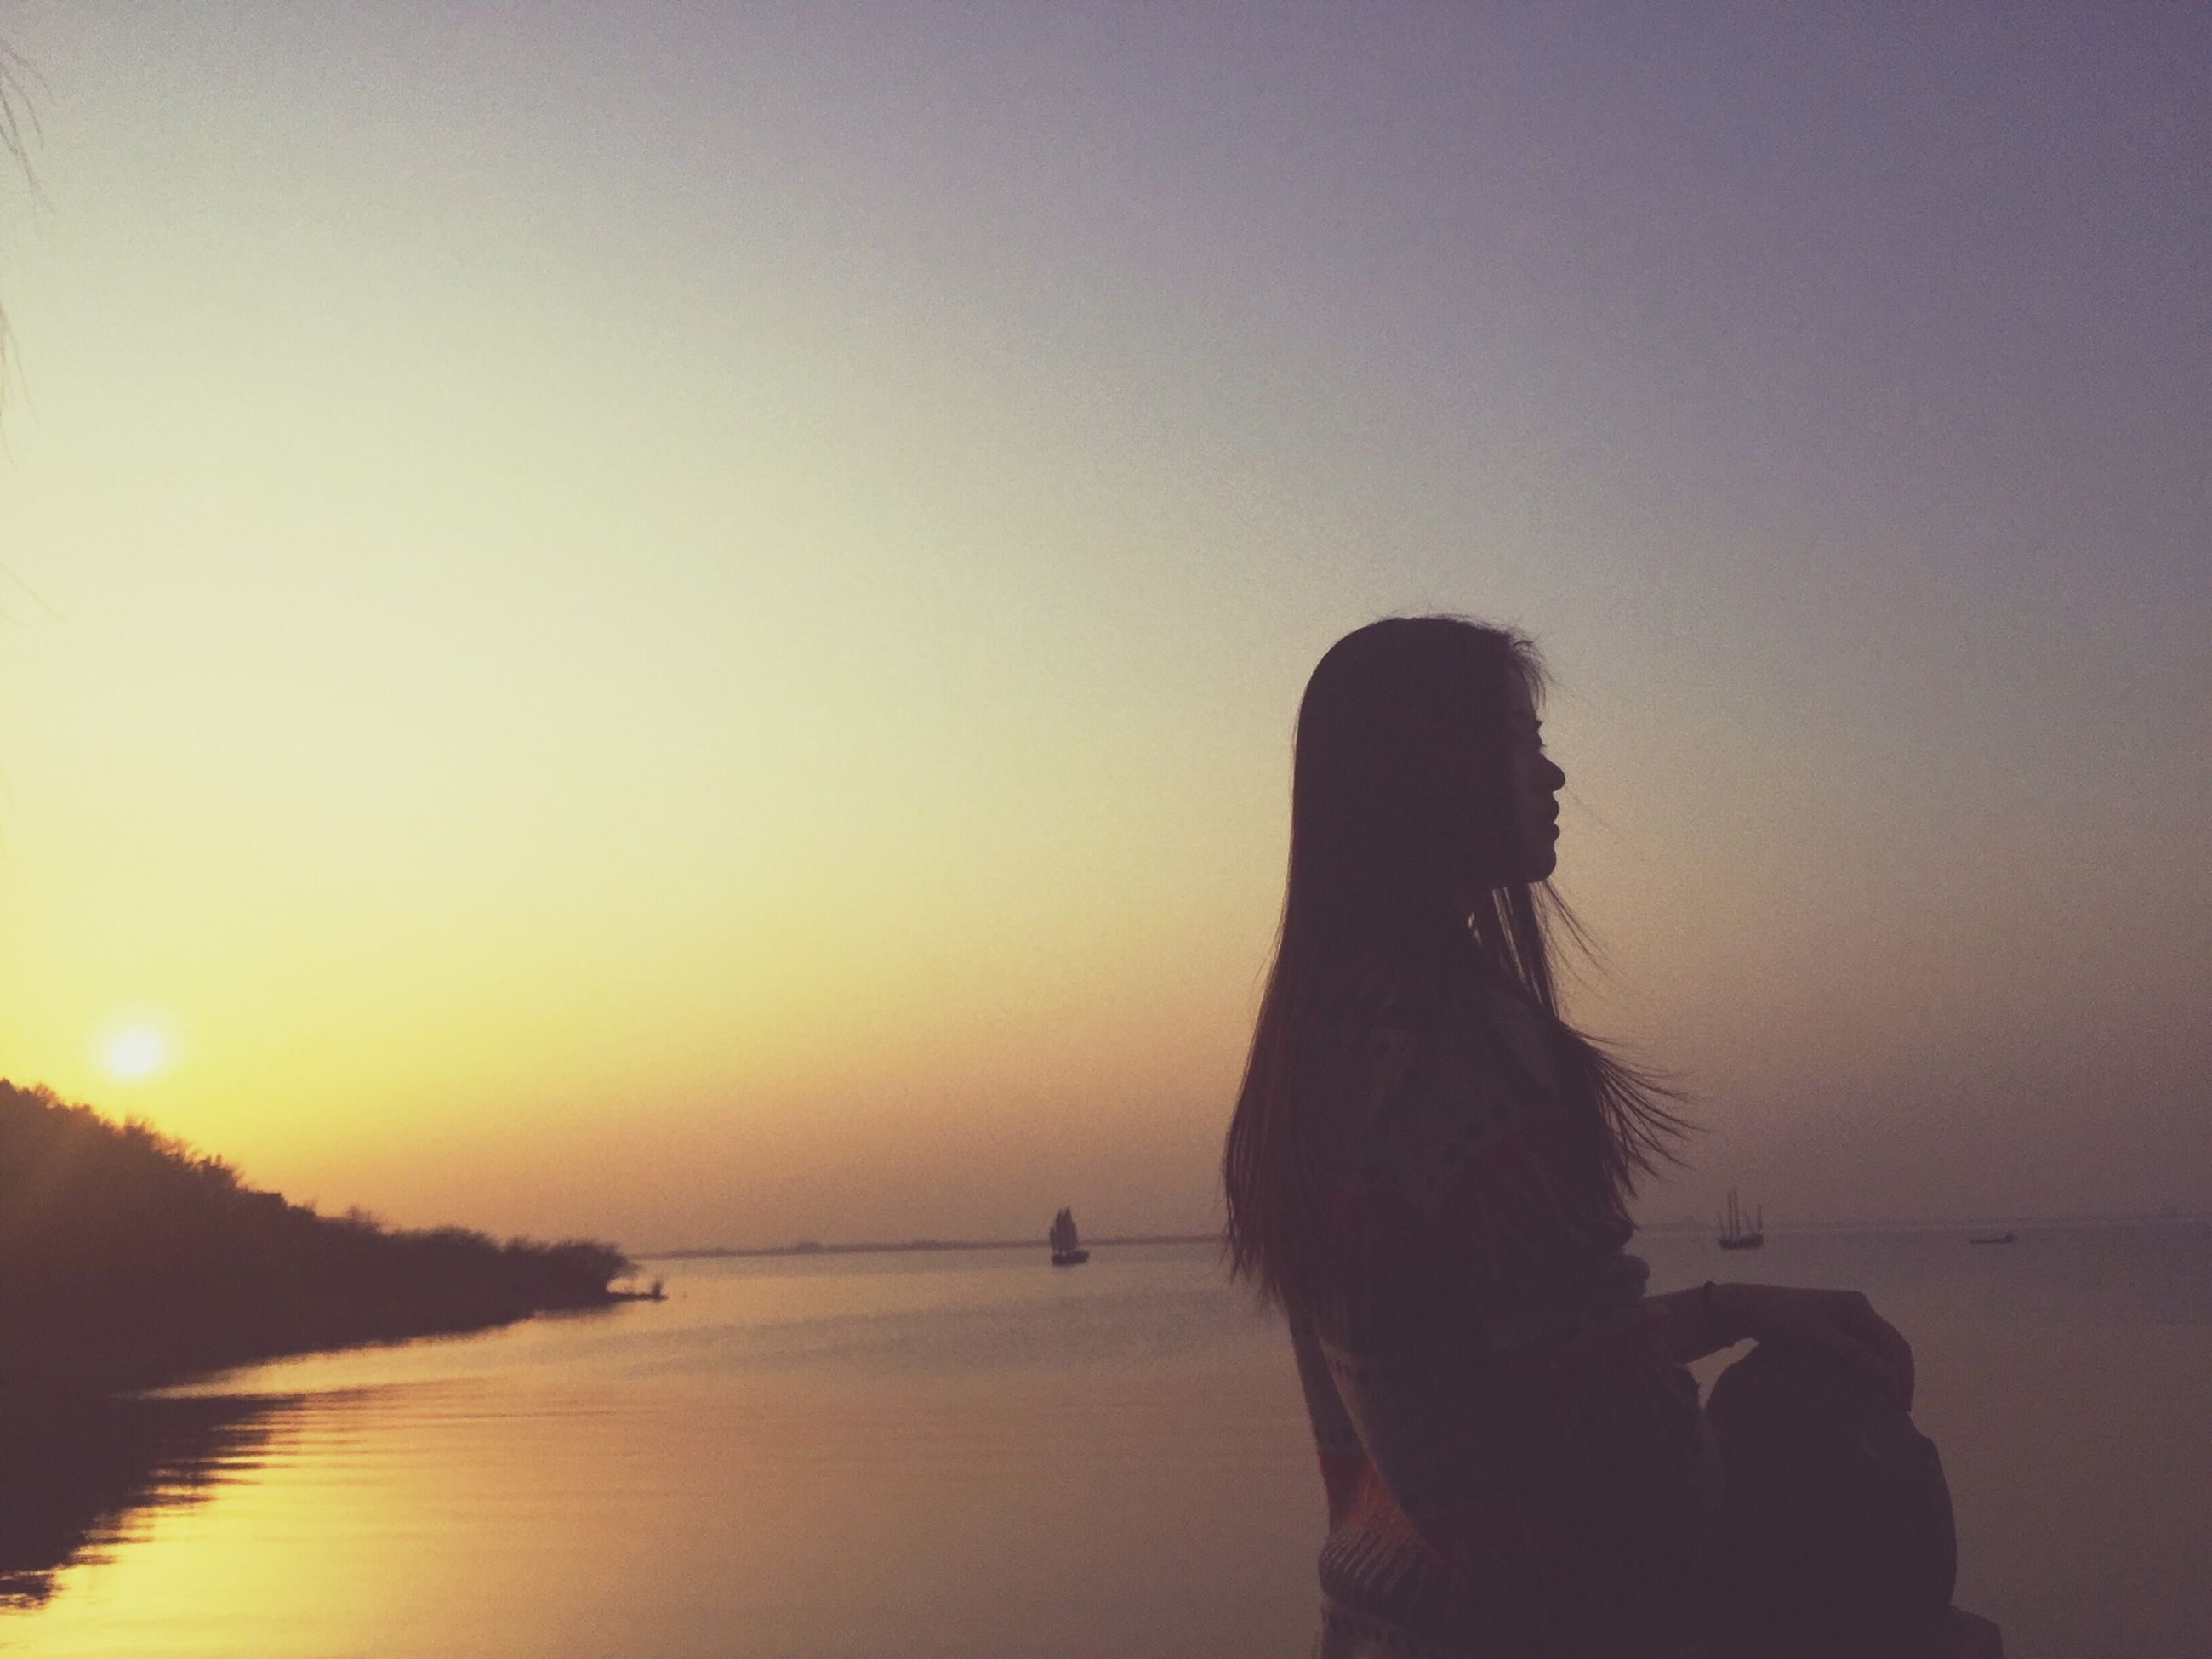 sunset, sea, water, silhouette, horizon over water, scenics, tranquility, tranquil scene, sun, beauty in nature, orange color, idyllic, beach, leisure activity, lifestyles, nature, sky, clear sky